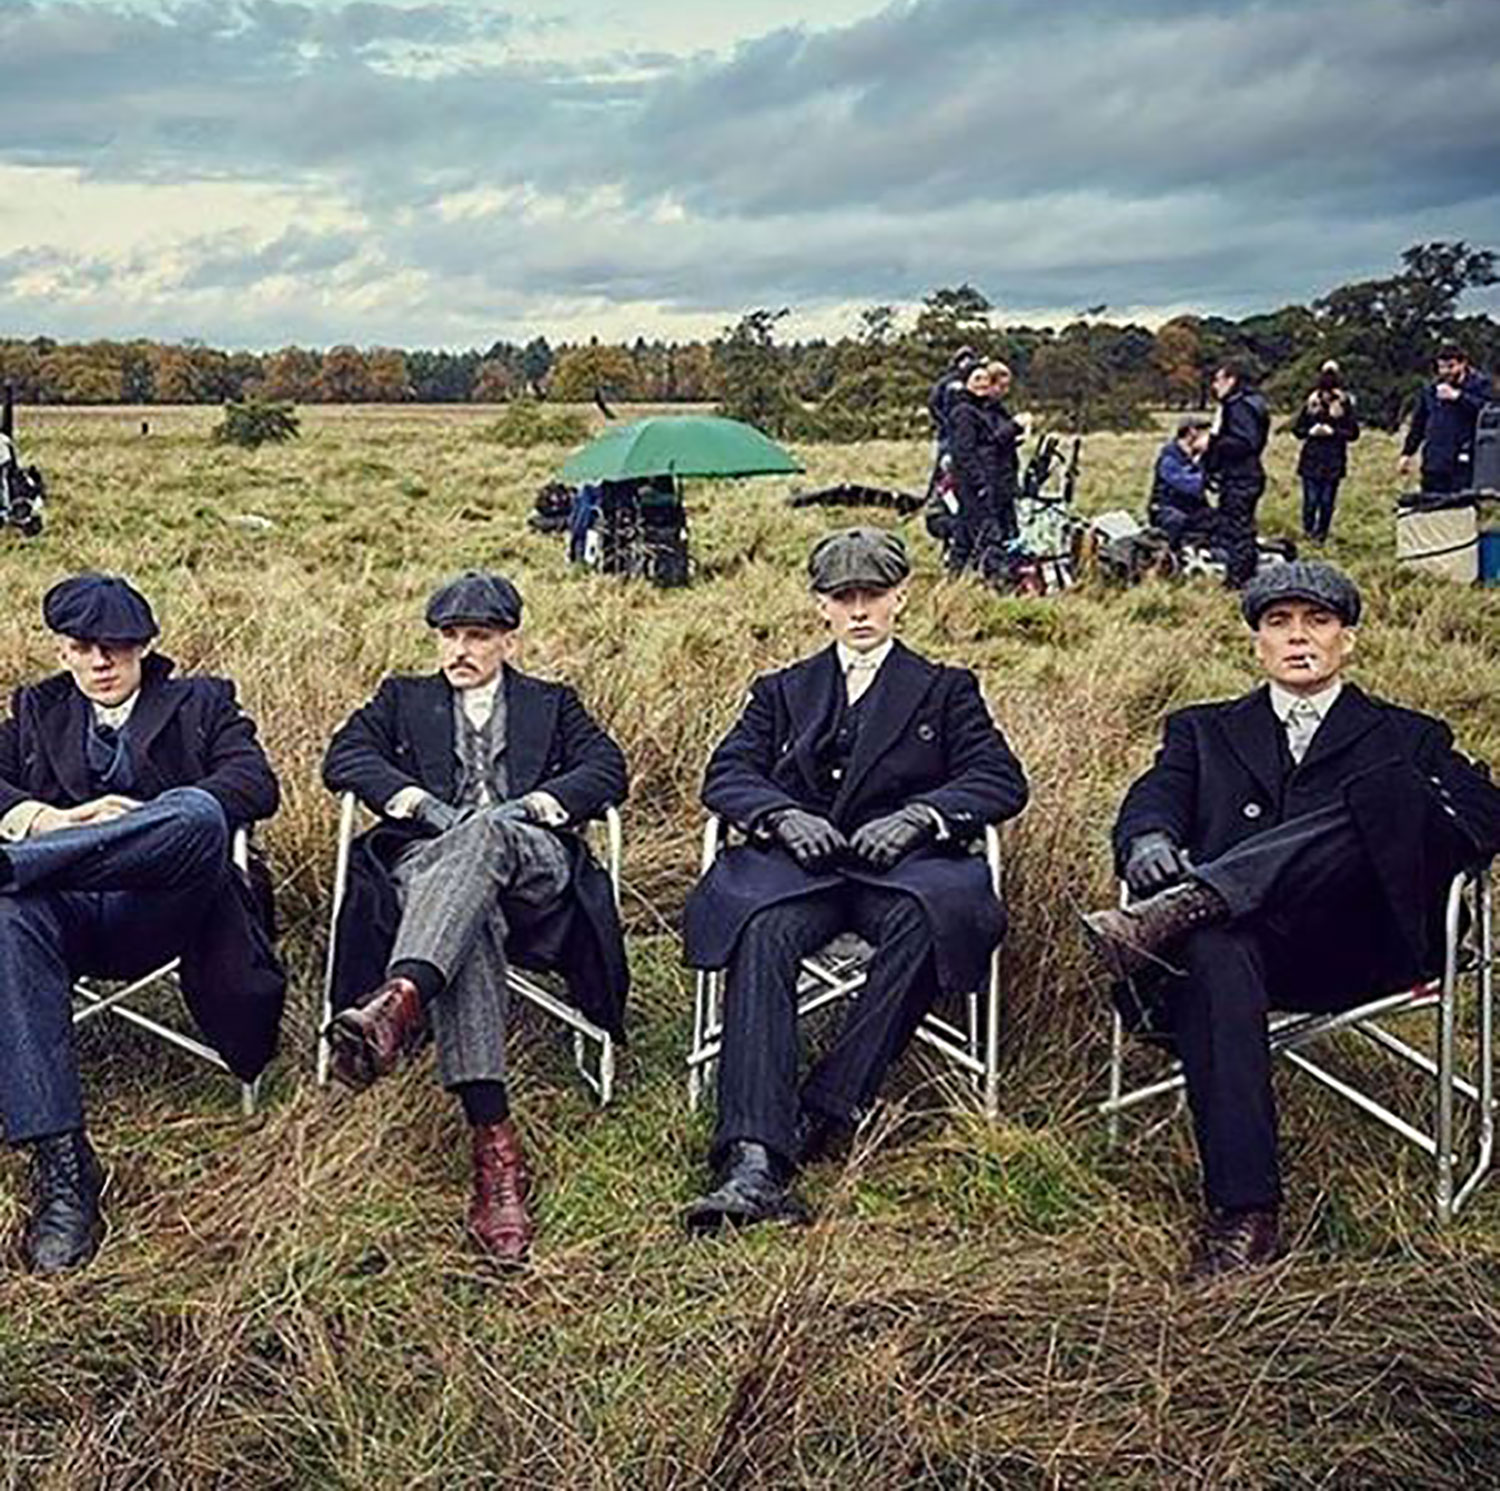 peaky-blinders-behind-the-scenes-cheaney.jpg